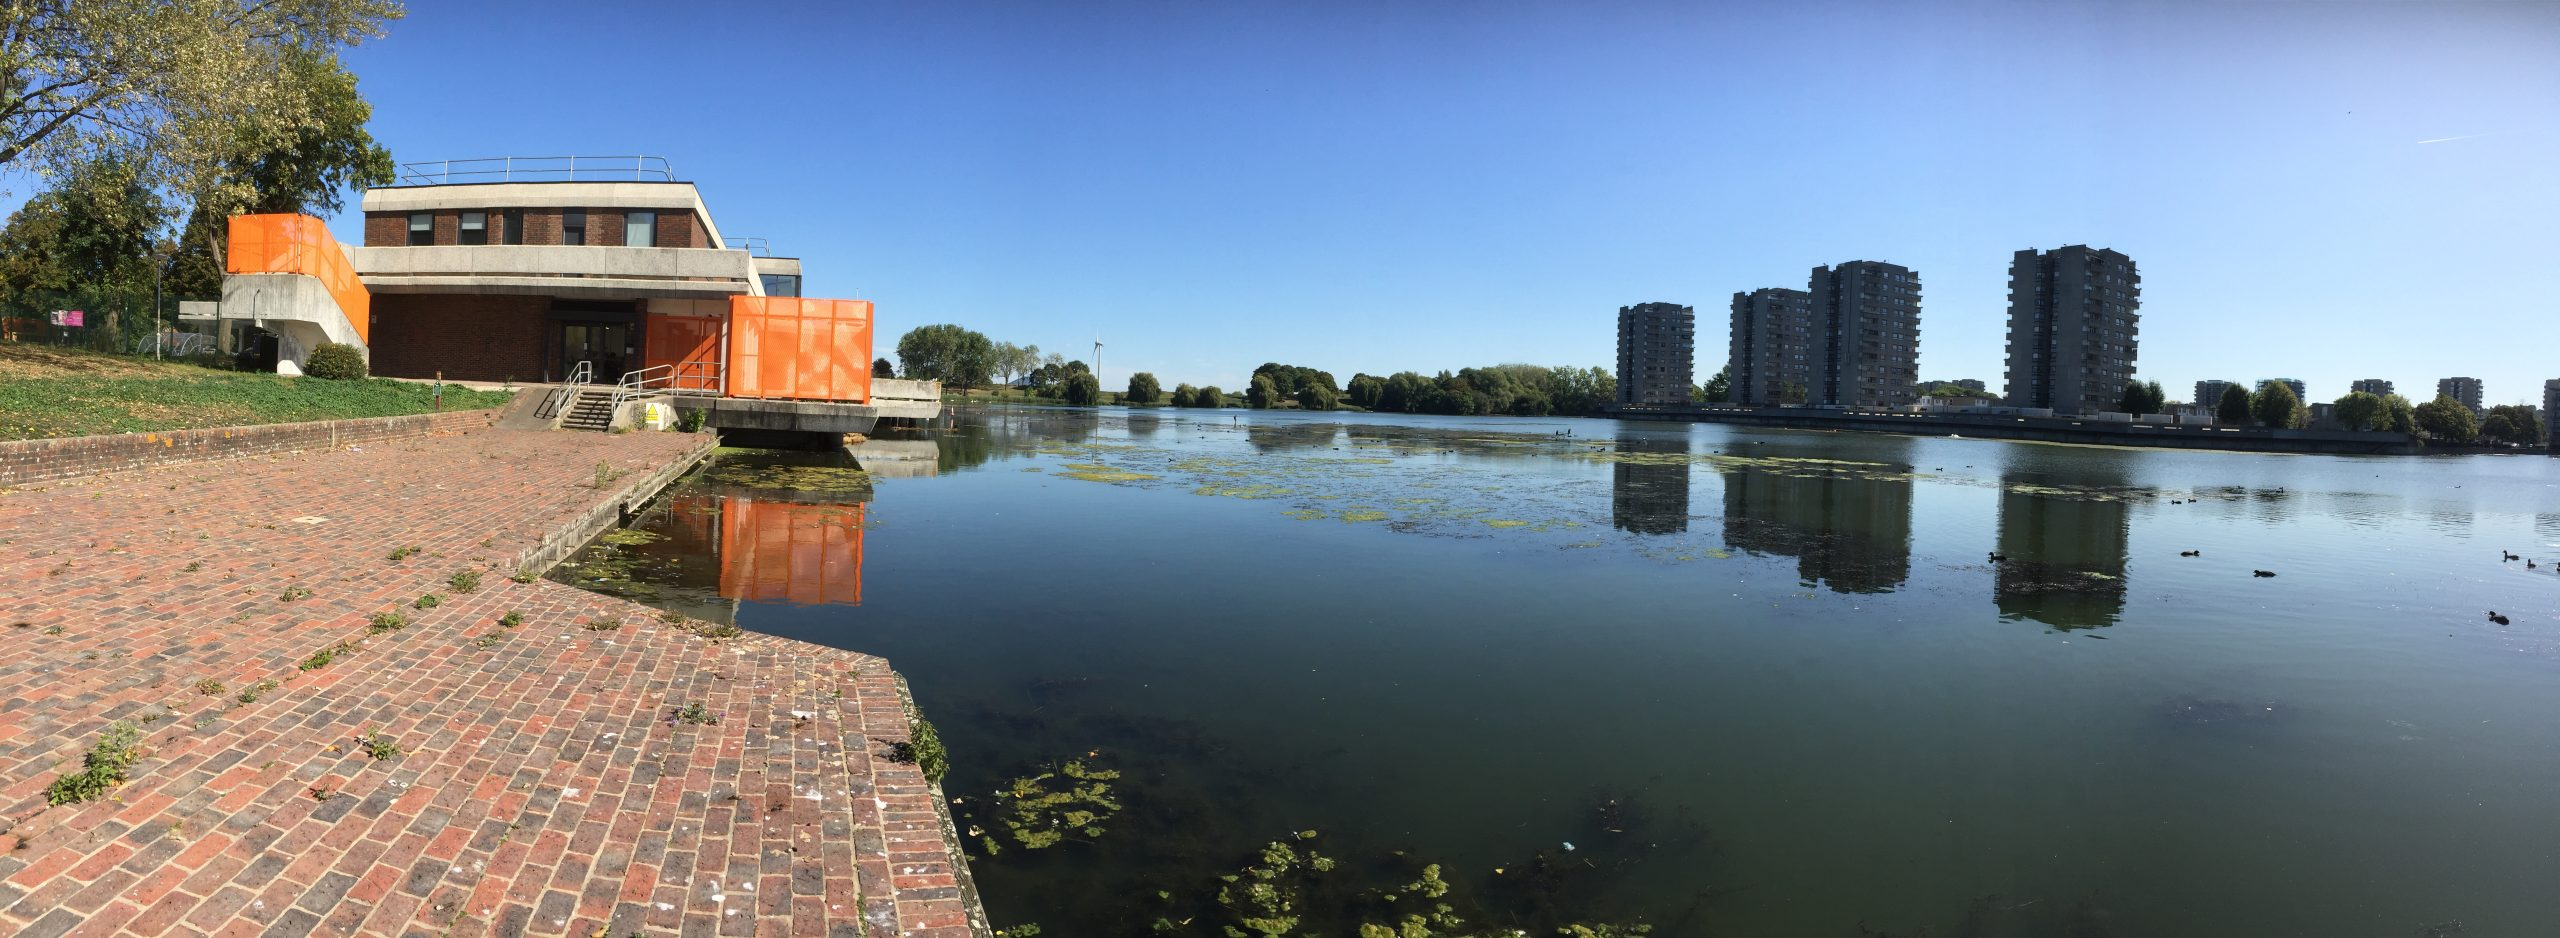 The Lakeside Centre, Thamesmead